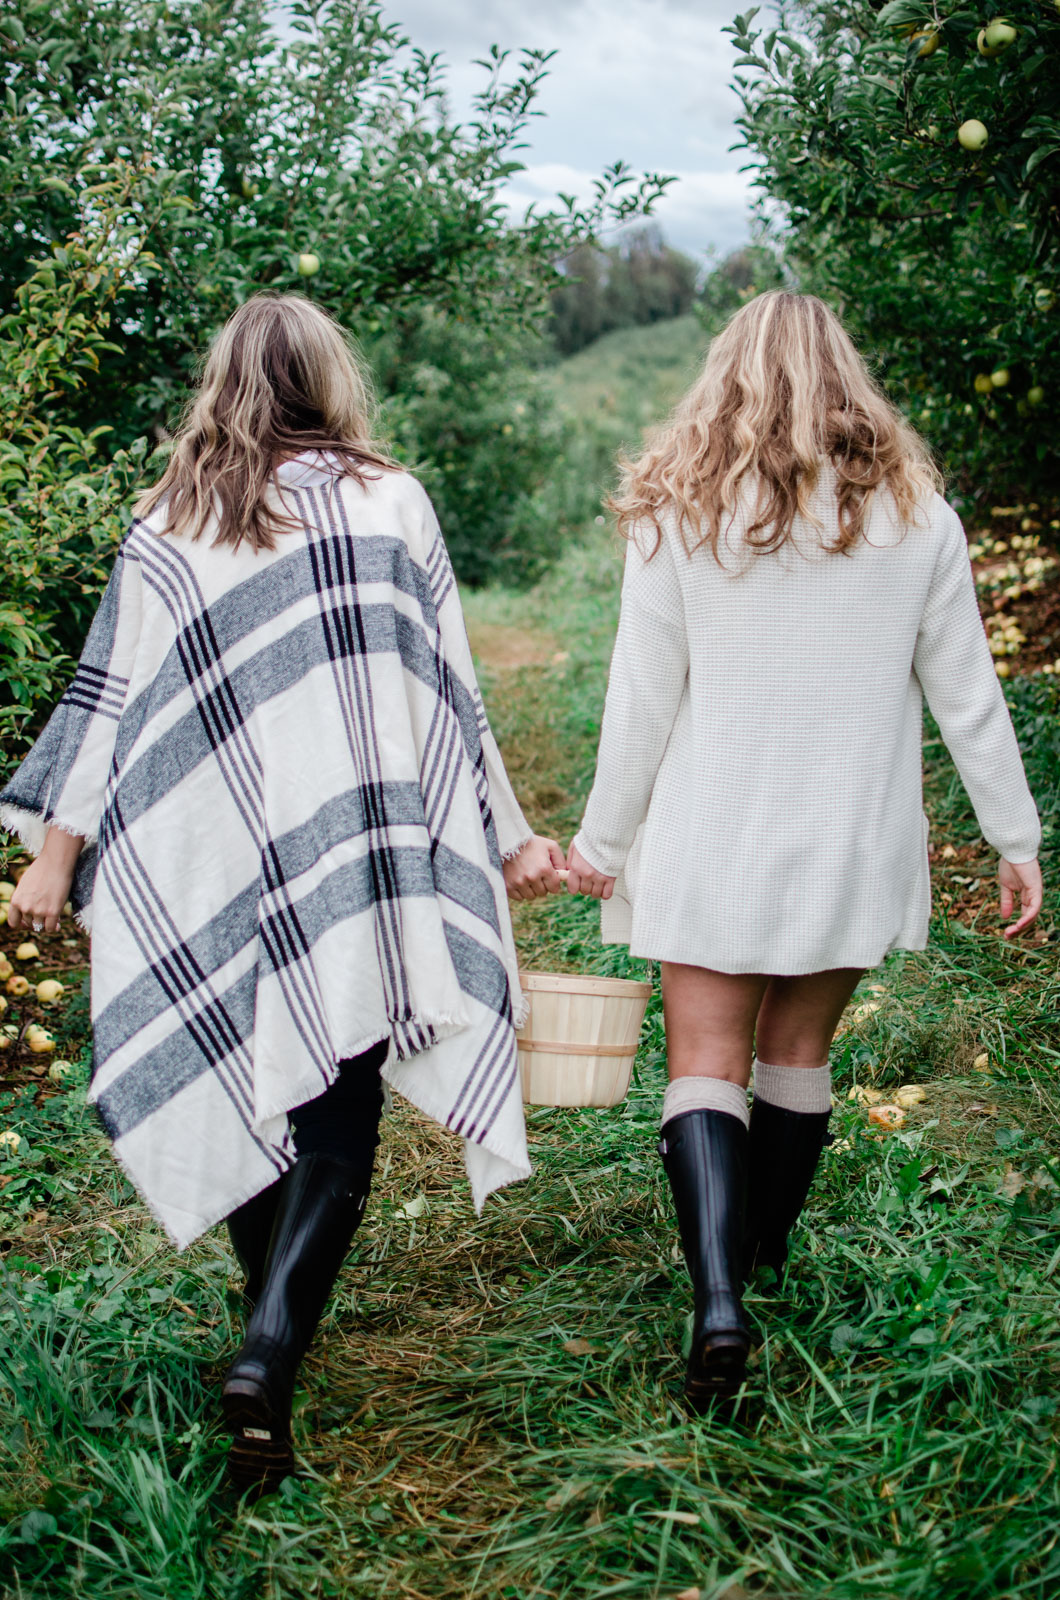 family apple picking outfits - coordinating fall family outfits | bylaurenm.com